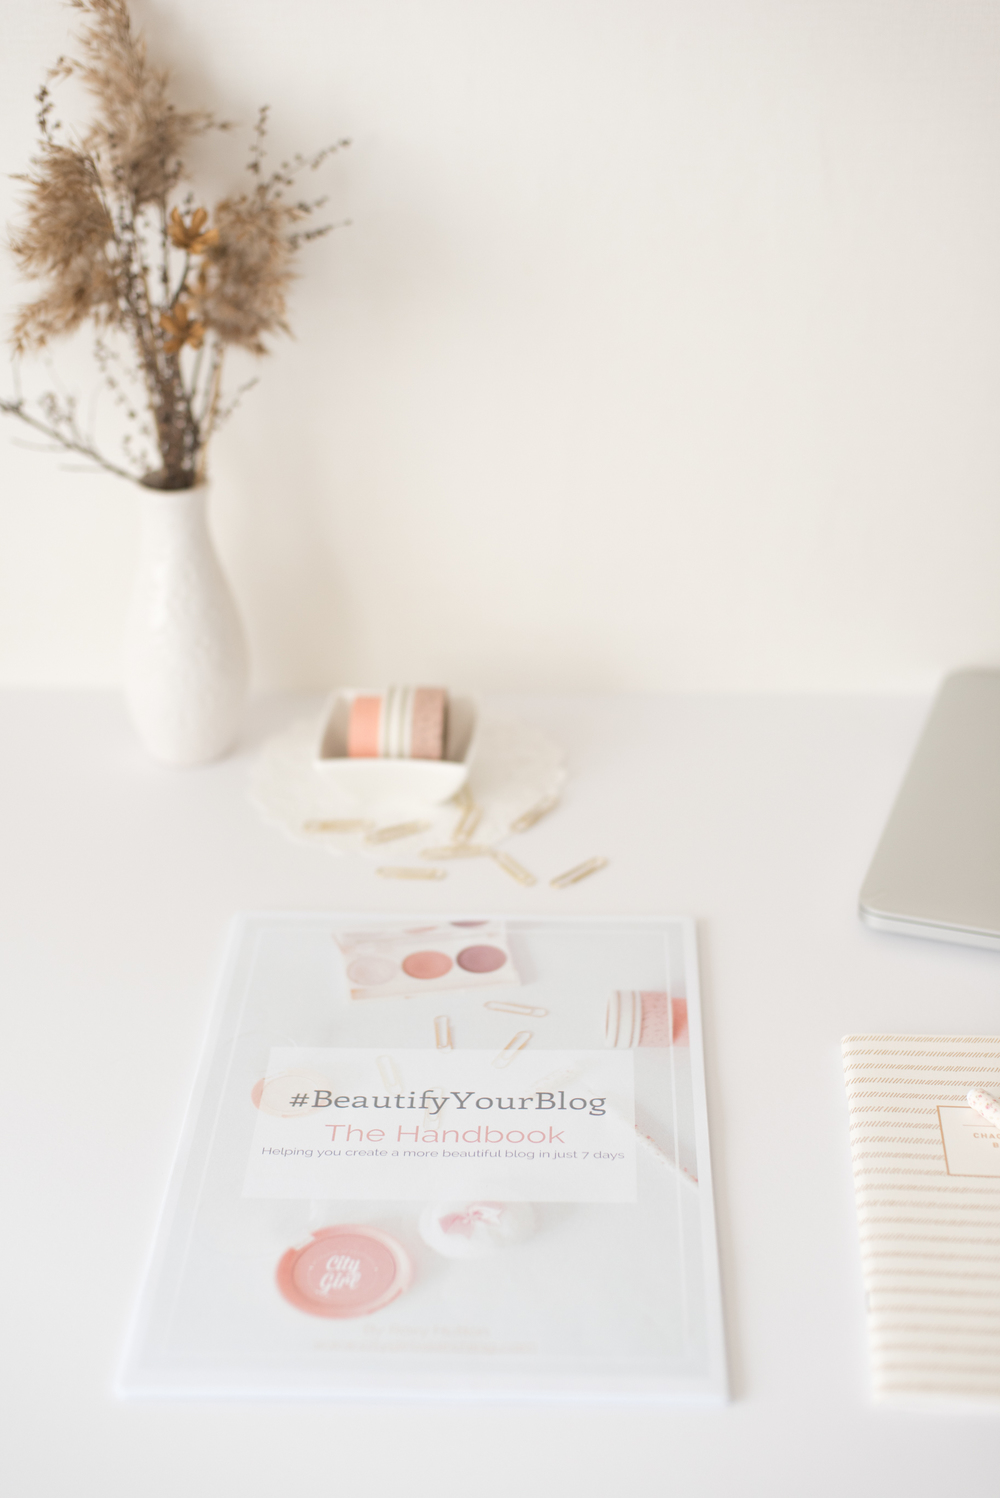 #BeautifyYourBlog Handguide for Bloggers byr Roxy Hutton of CityGirlSearching (2 of 25).JPG